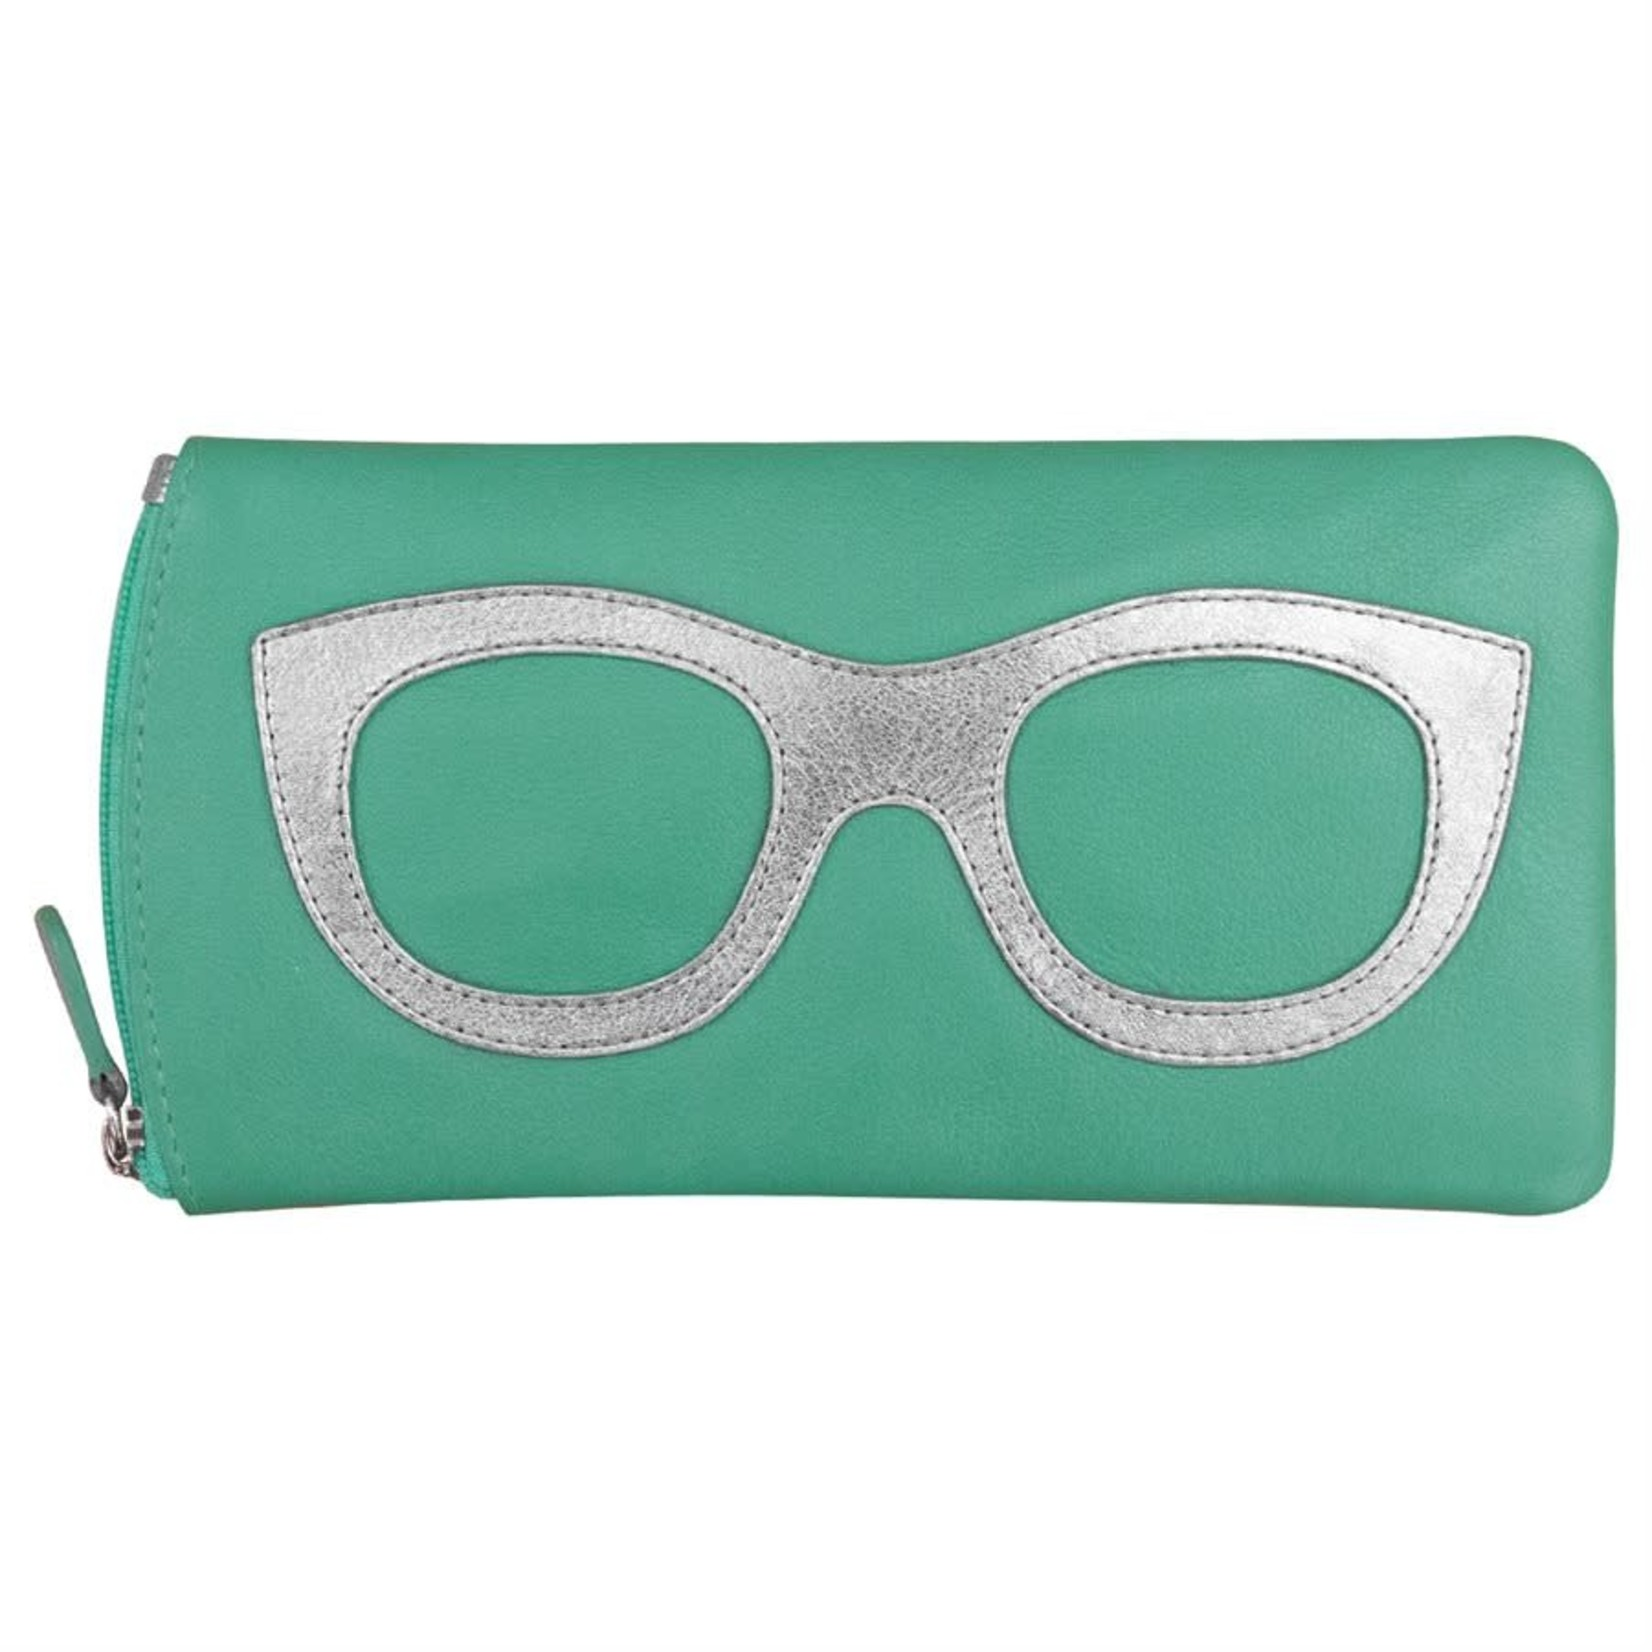 Leather Handbags and Accessories 6462 Turquoise/Metallic Silver - Leather Eyeglass Case